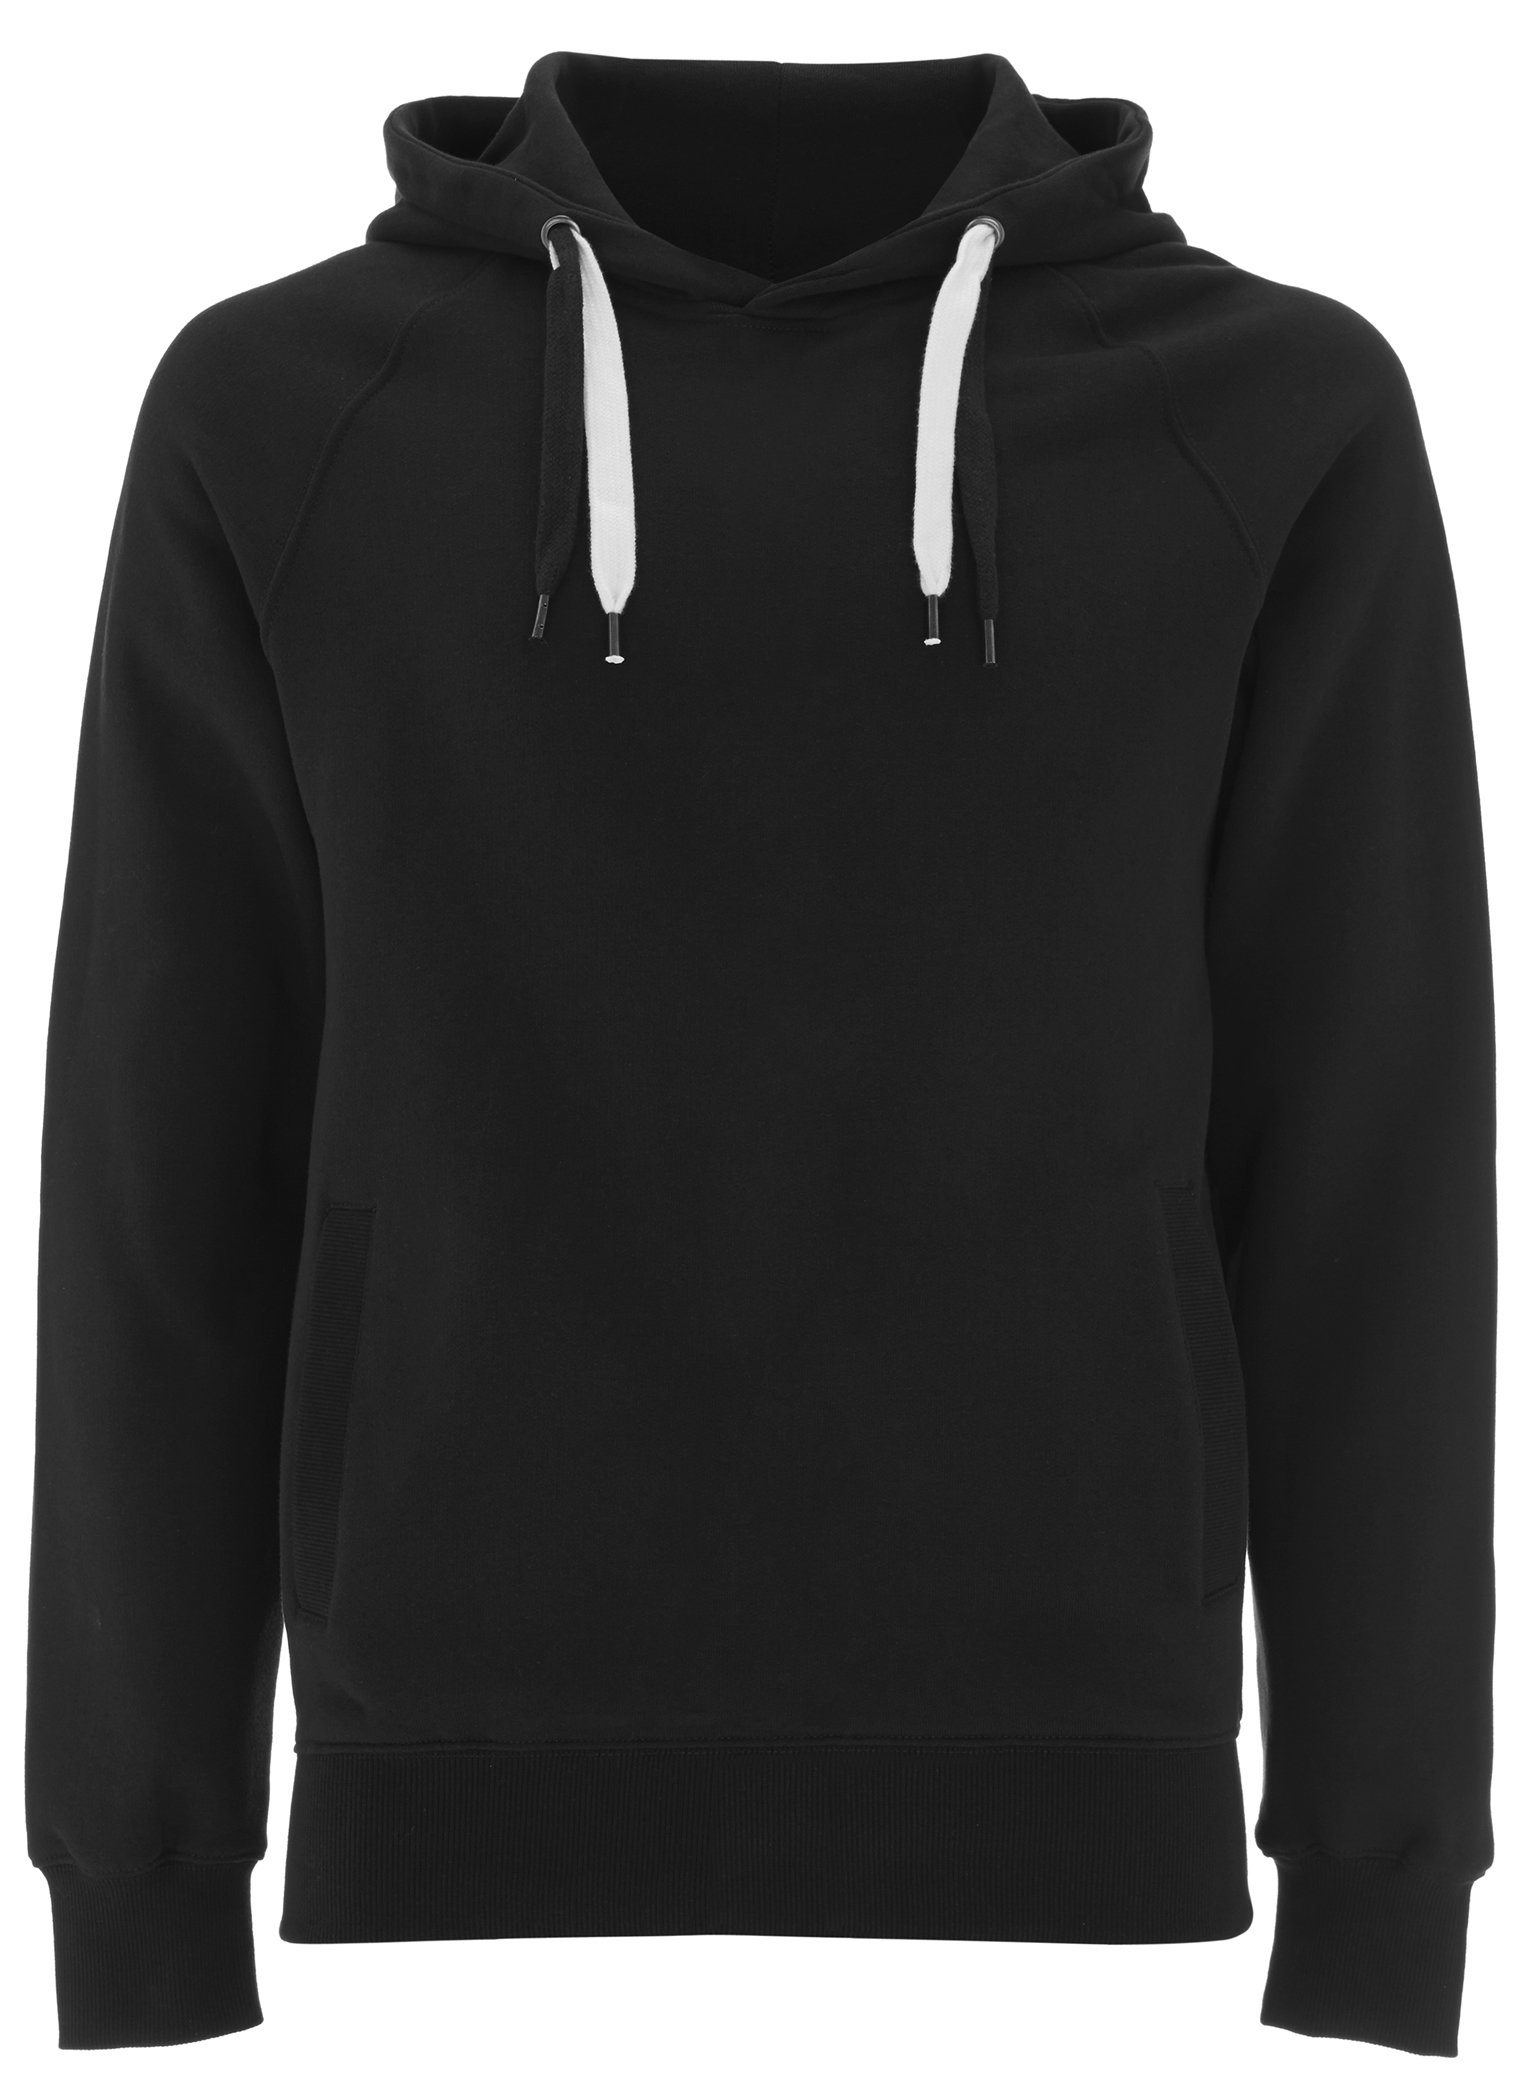 Underhood of London Black Pullover Hoodie for Girls - X Small - XS - Girls Hooded Cotton Sweatshirt by Underhood of London